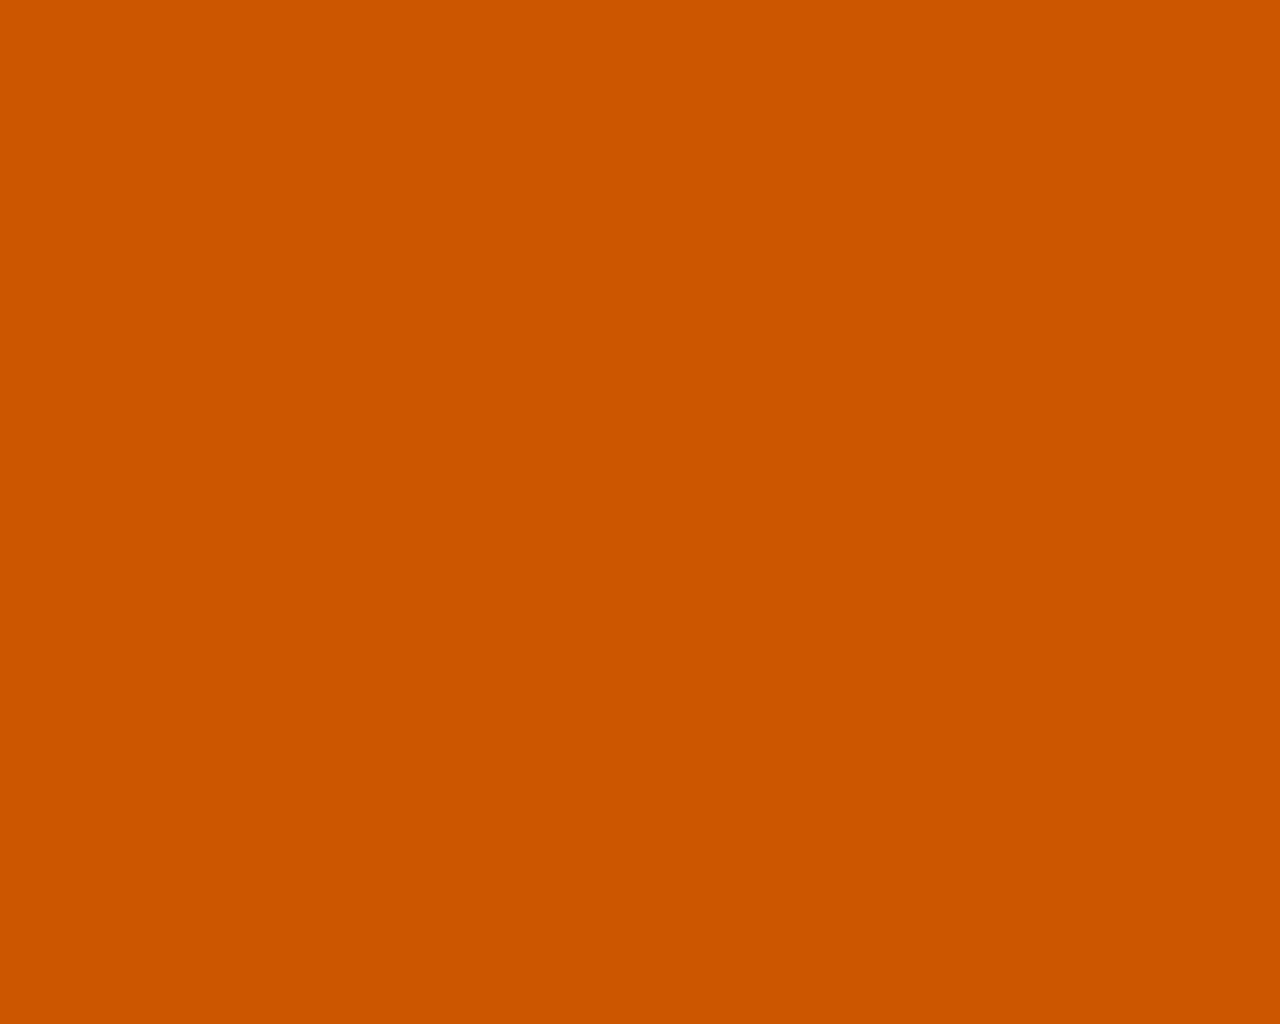 1280x1024 Burnt Orange Solid Color Background